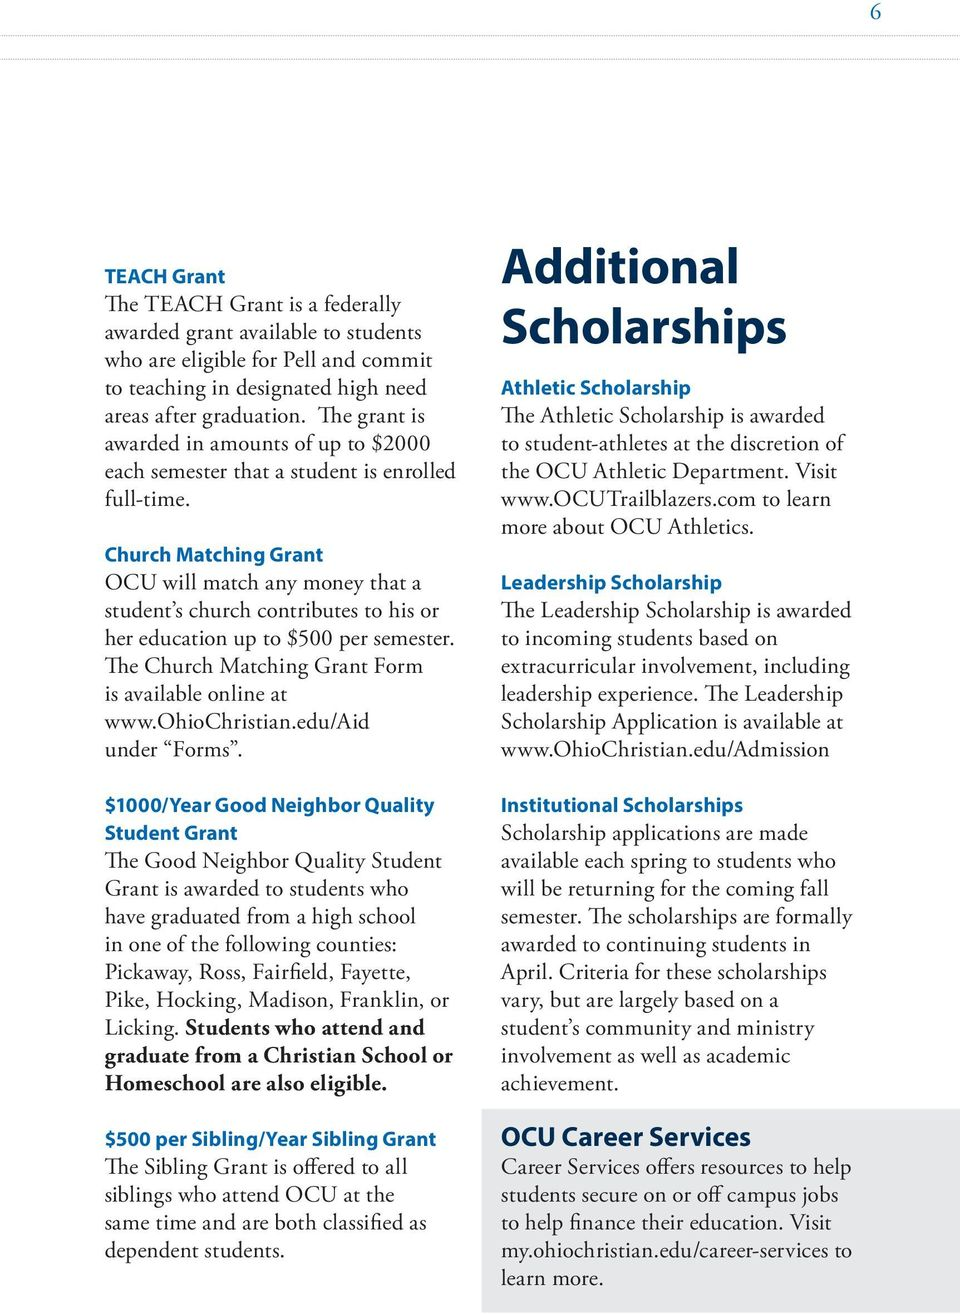 Church Matching Grant OCU will match any money that a student s church contributes to his or her education up to $500 per semester. The Church Matching Grant Form is available online at www.